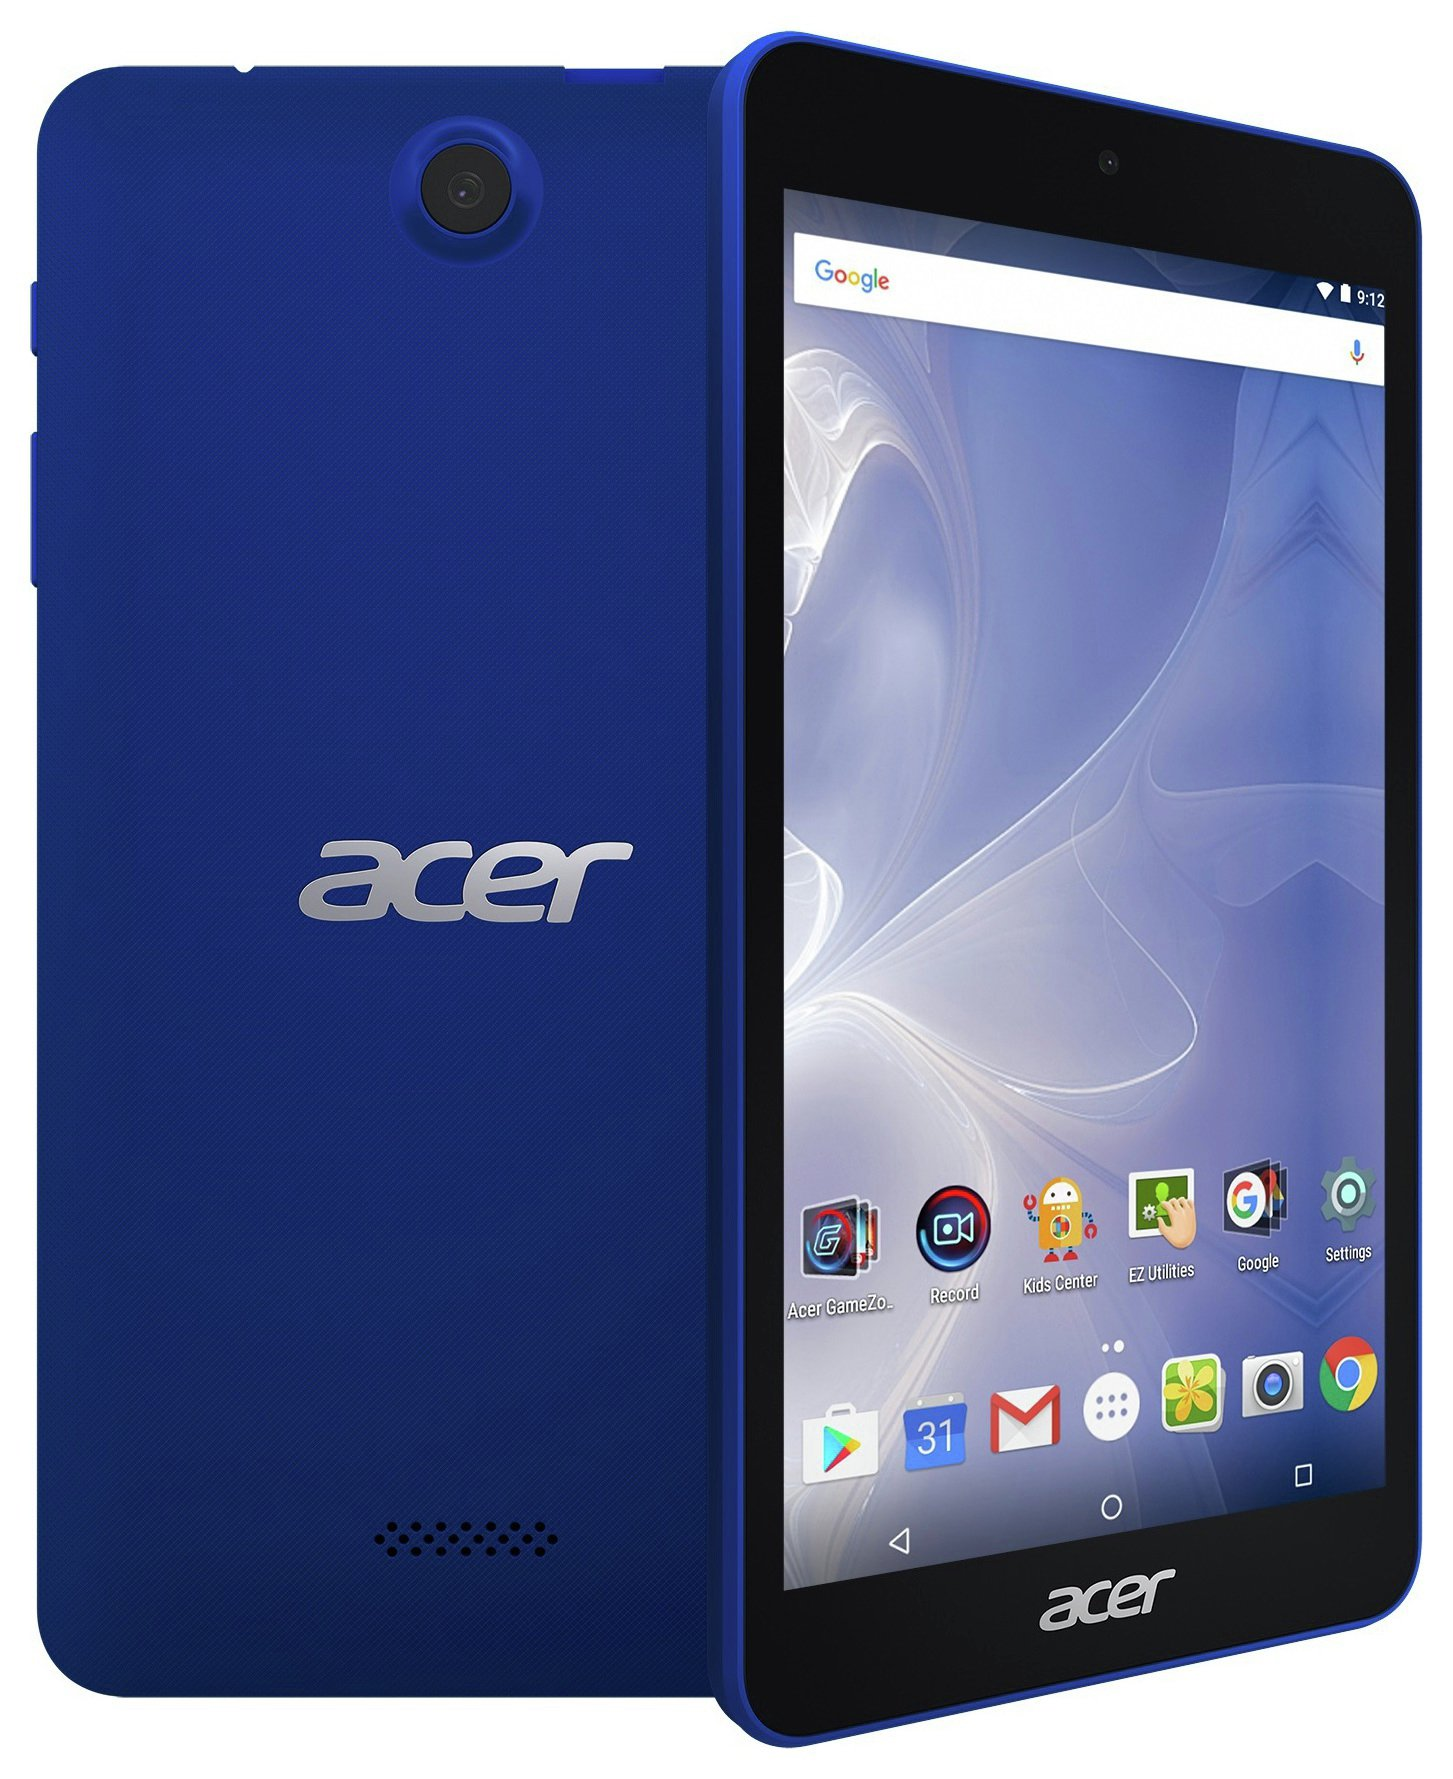 Acer Iconia One B1 780 7 Inch 8GB Tablet - Blue.